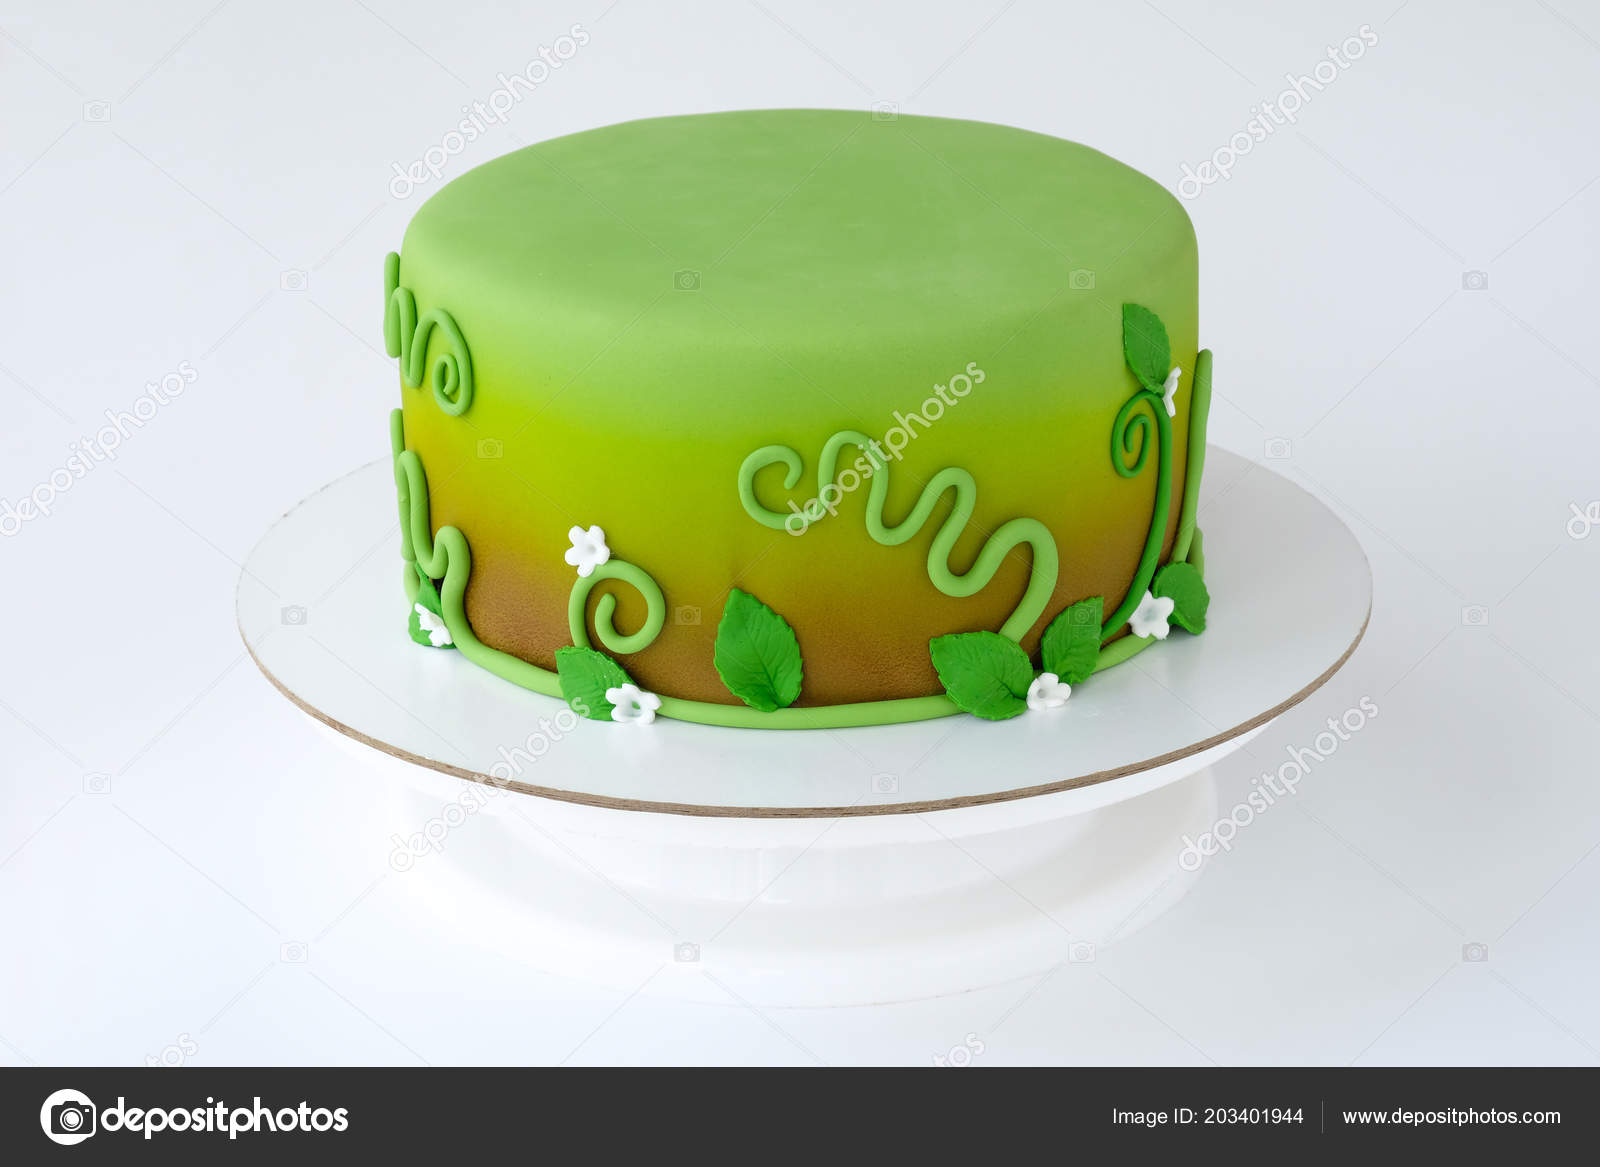 Cake Children Birthday Made Green Mastic Decorated Flowers Leaves Pattern Stock Photo